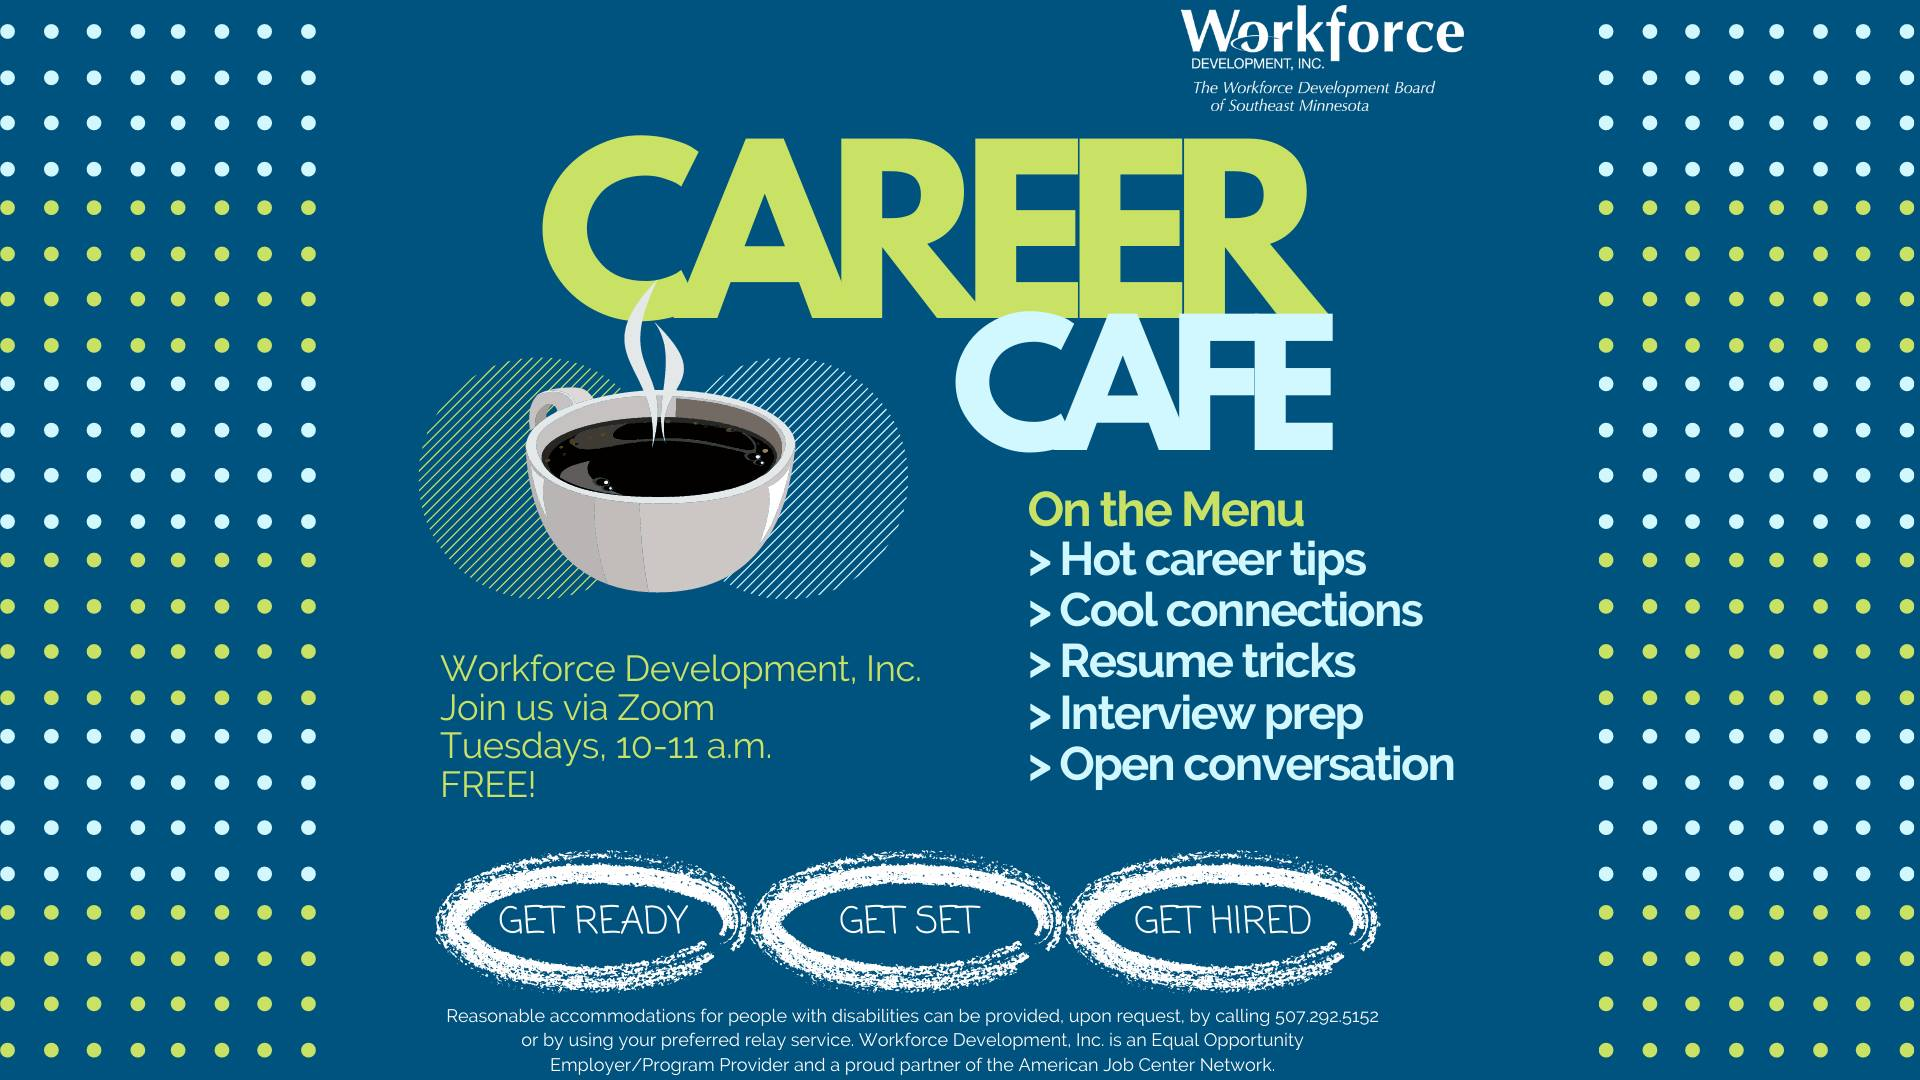 Career Café: Making a Good First Impression and the Elevator Pitch